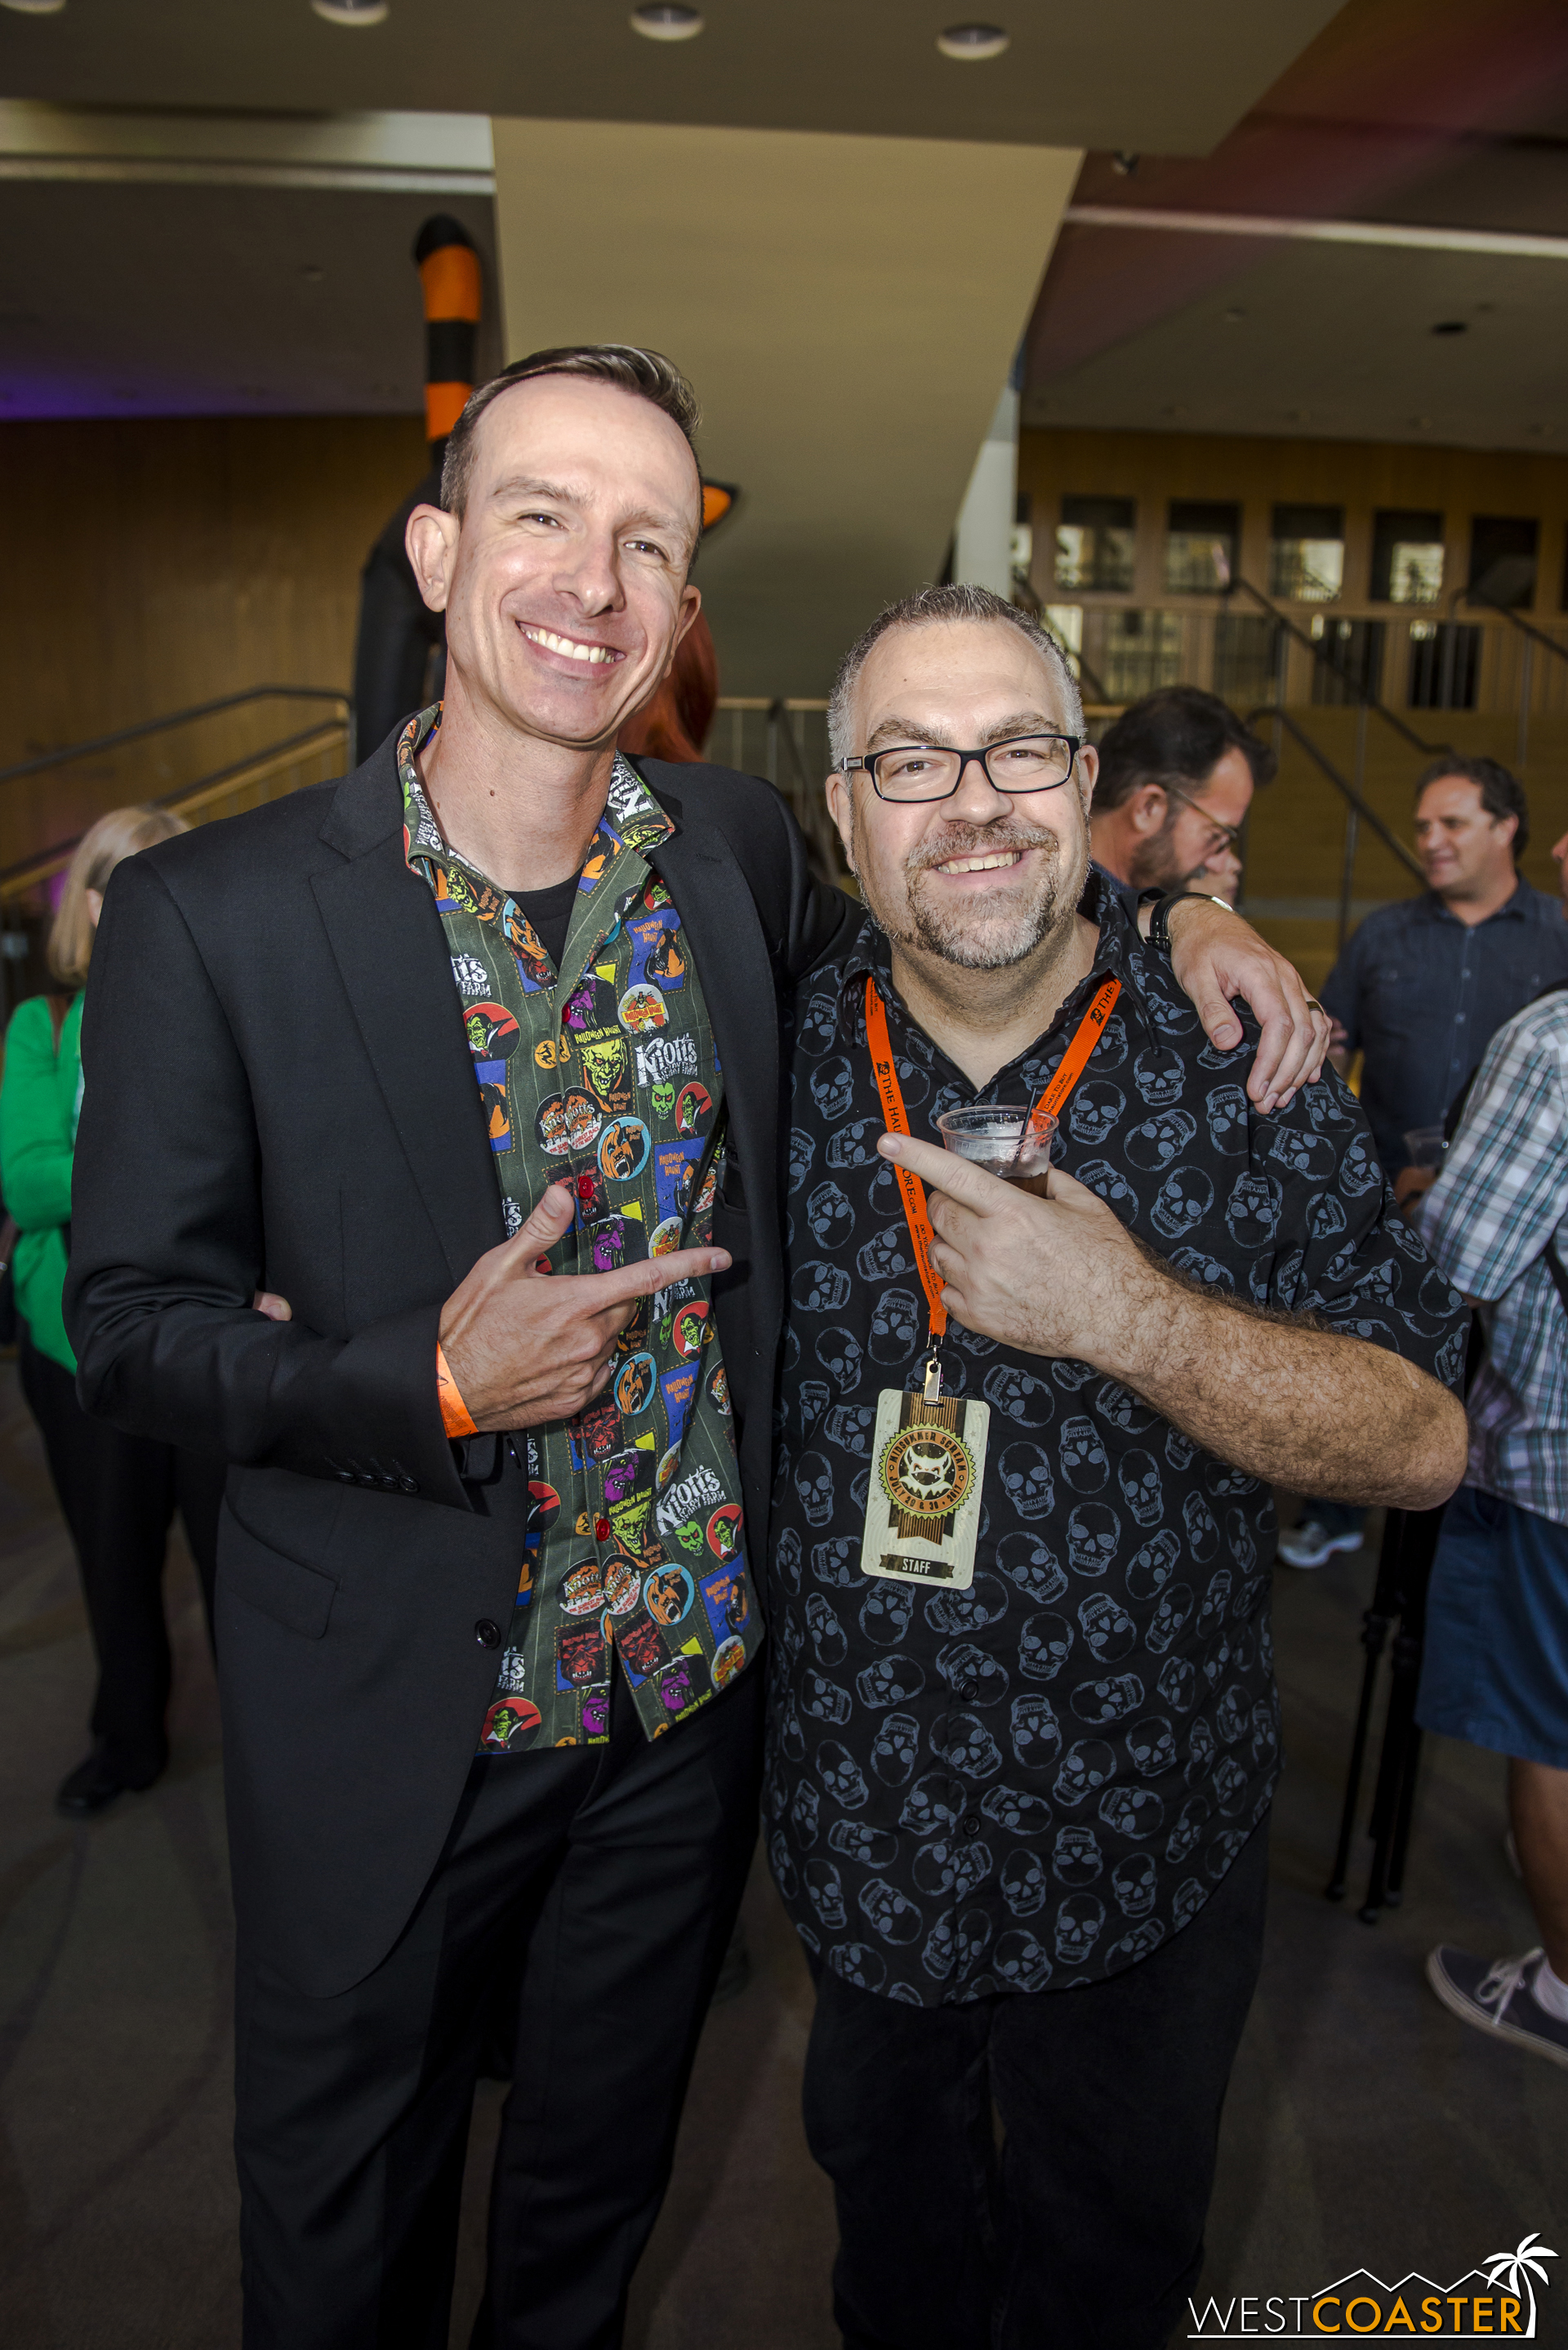 Ted Dougherty and Rick West basking in the success of the panel--eight months after the germination of the first idea over drinks at IAPPA.